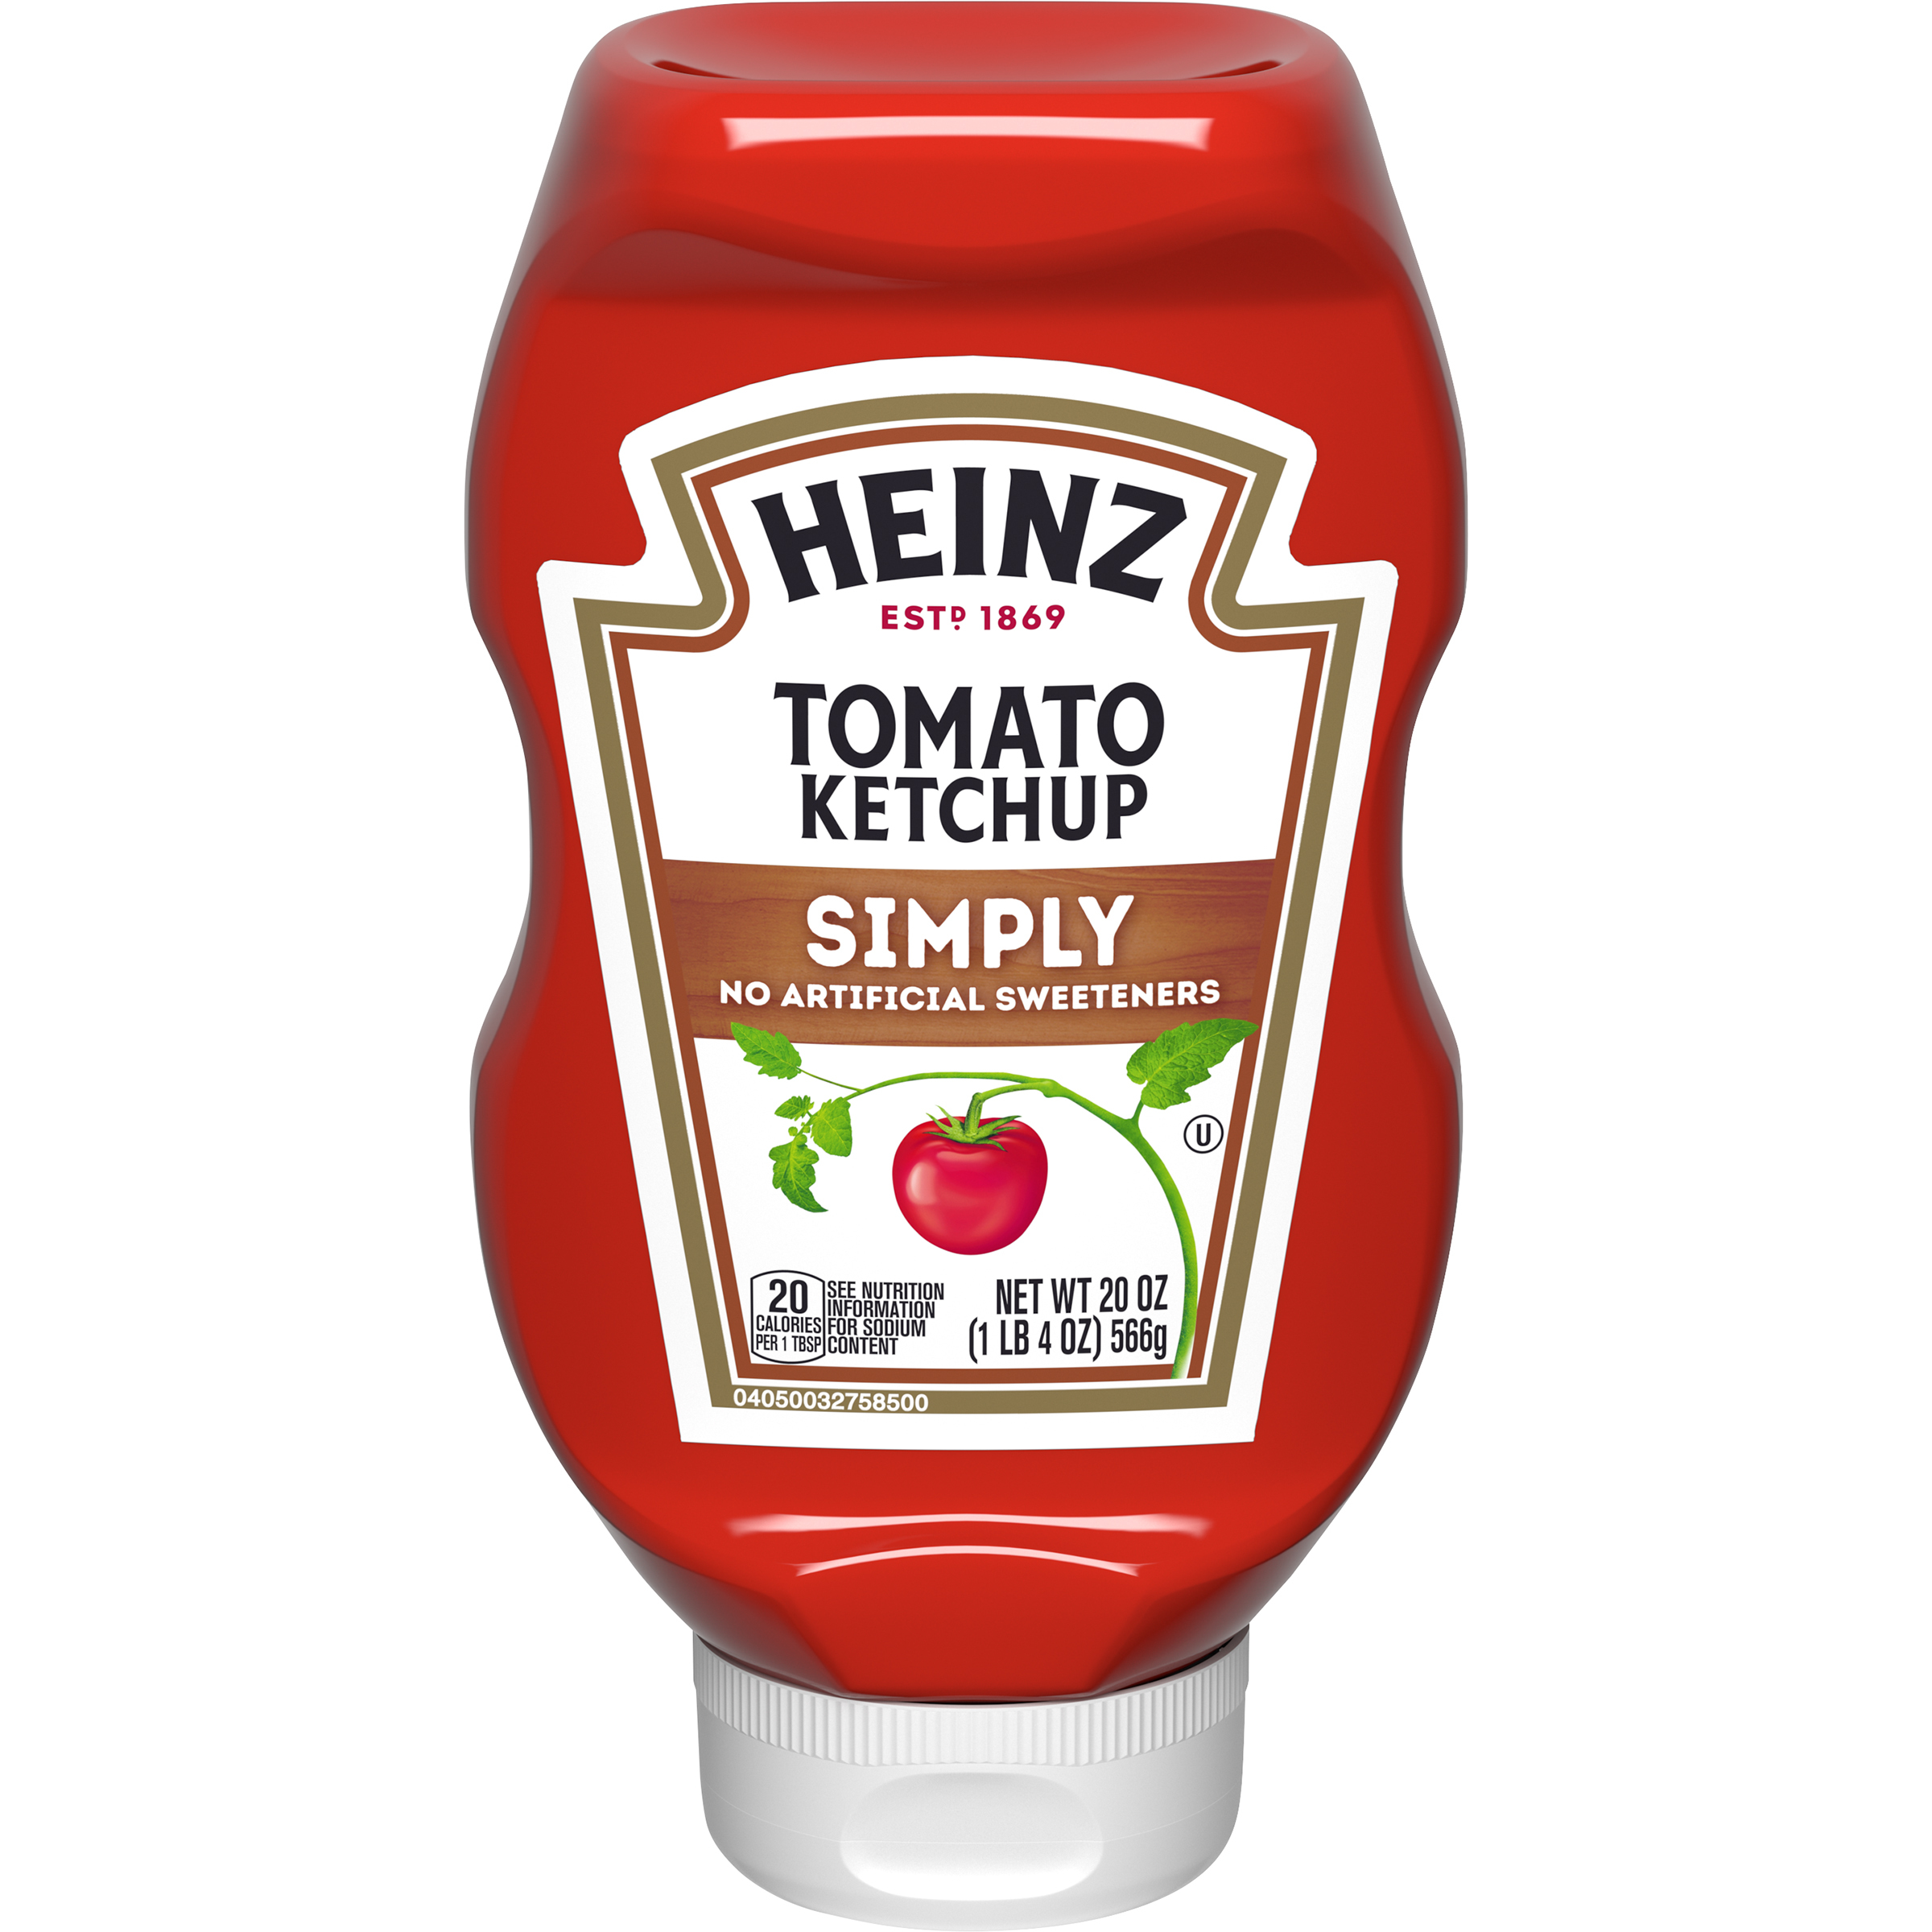 Heinz Simply Heinz Tomato Ketchup 20 oz Bottle image